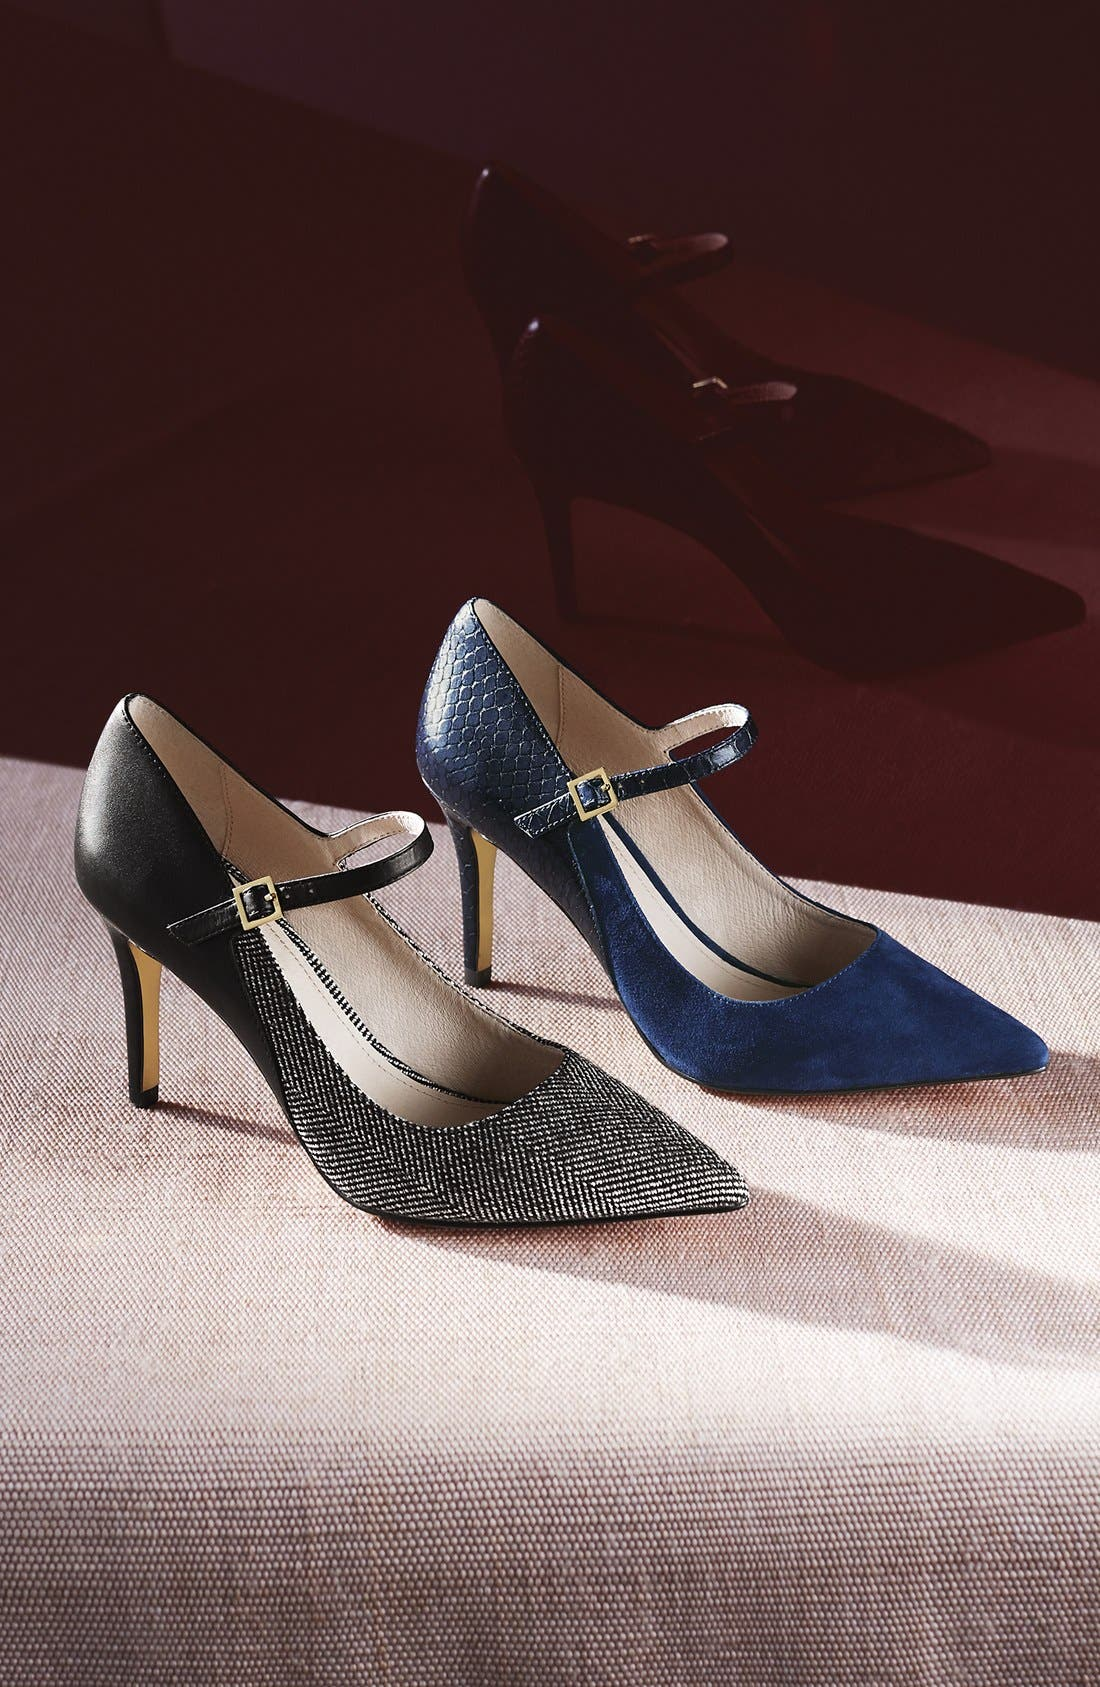 'Ione' Mary Jane Pump,                             Alternate thumbnail 5, color,                             020